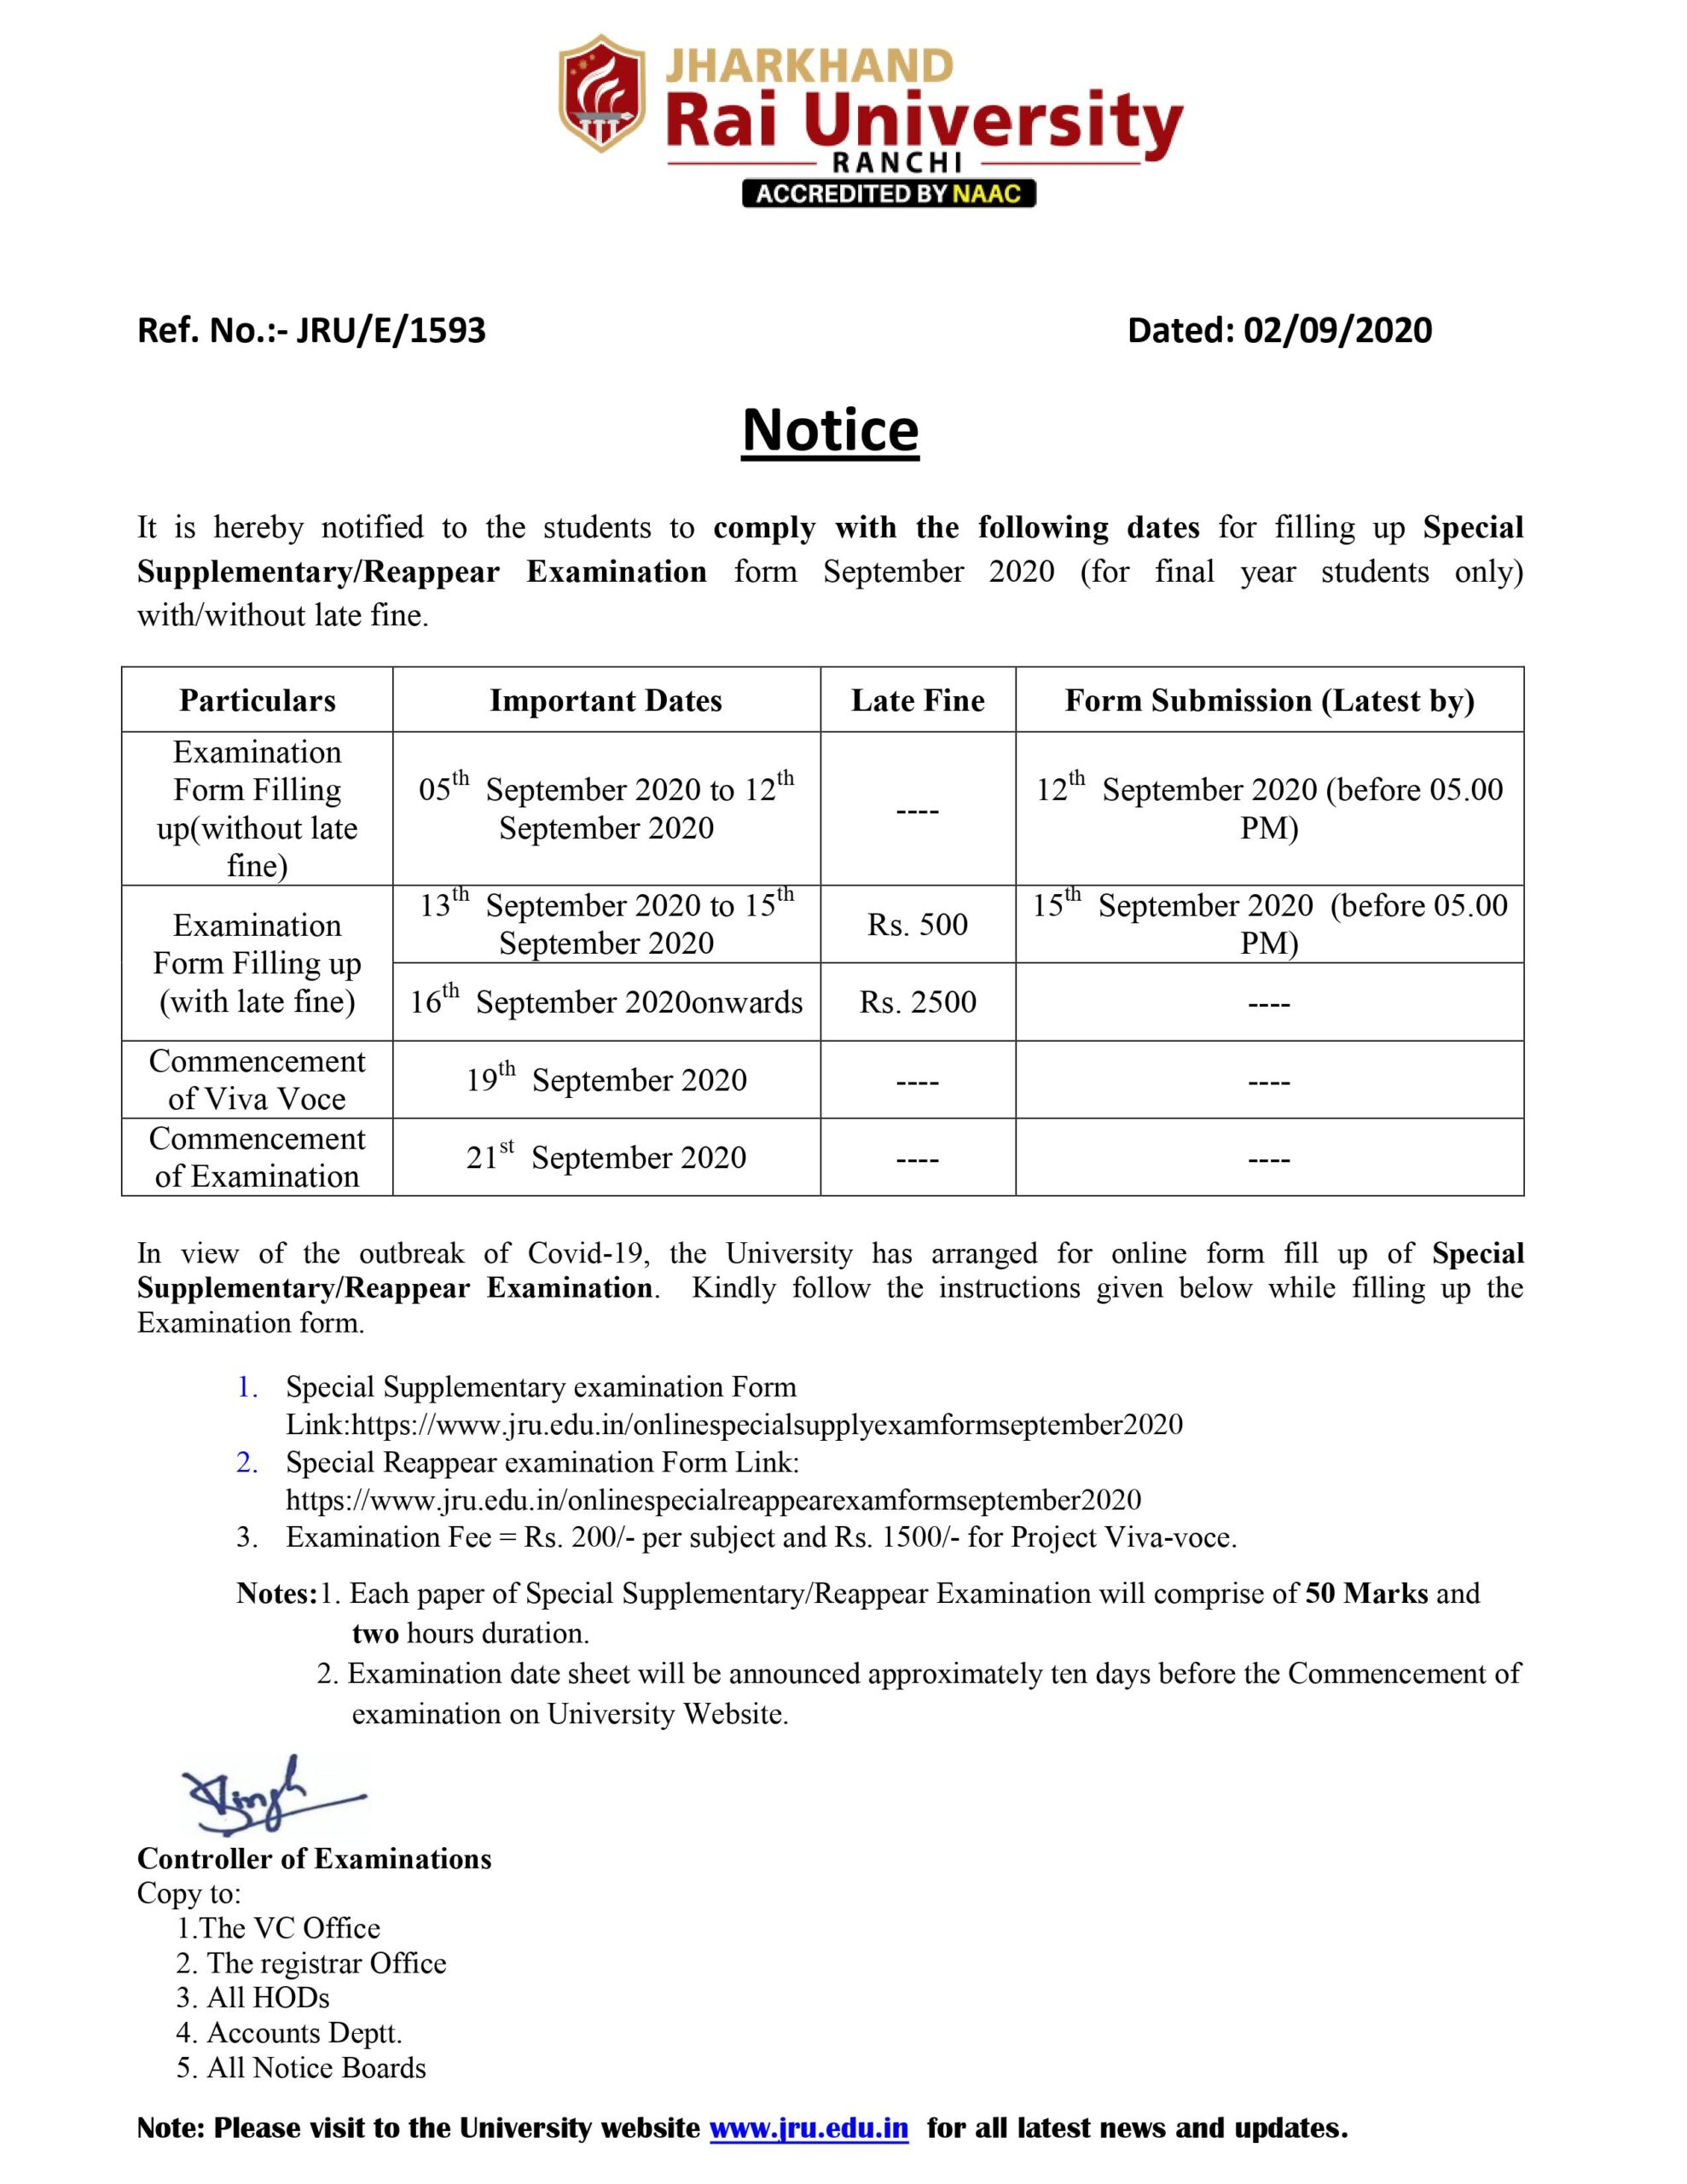 Special Supple & Reappear Exam Notice Sept 20